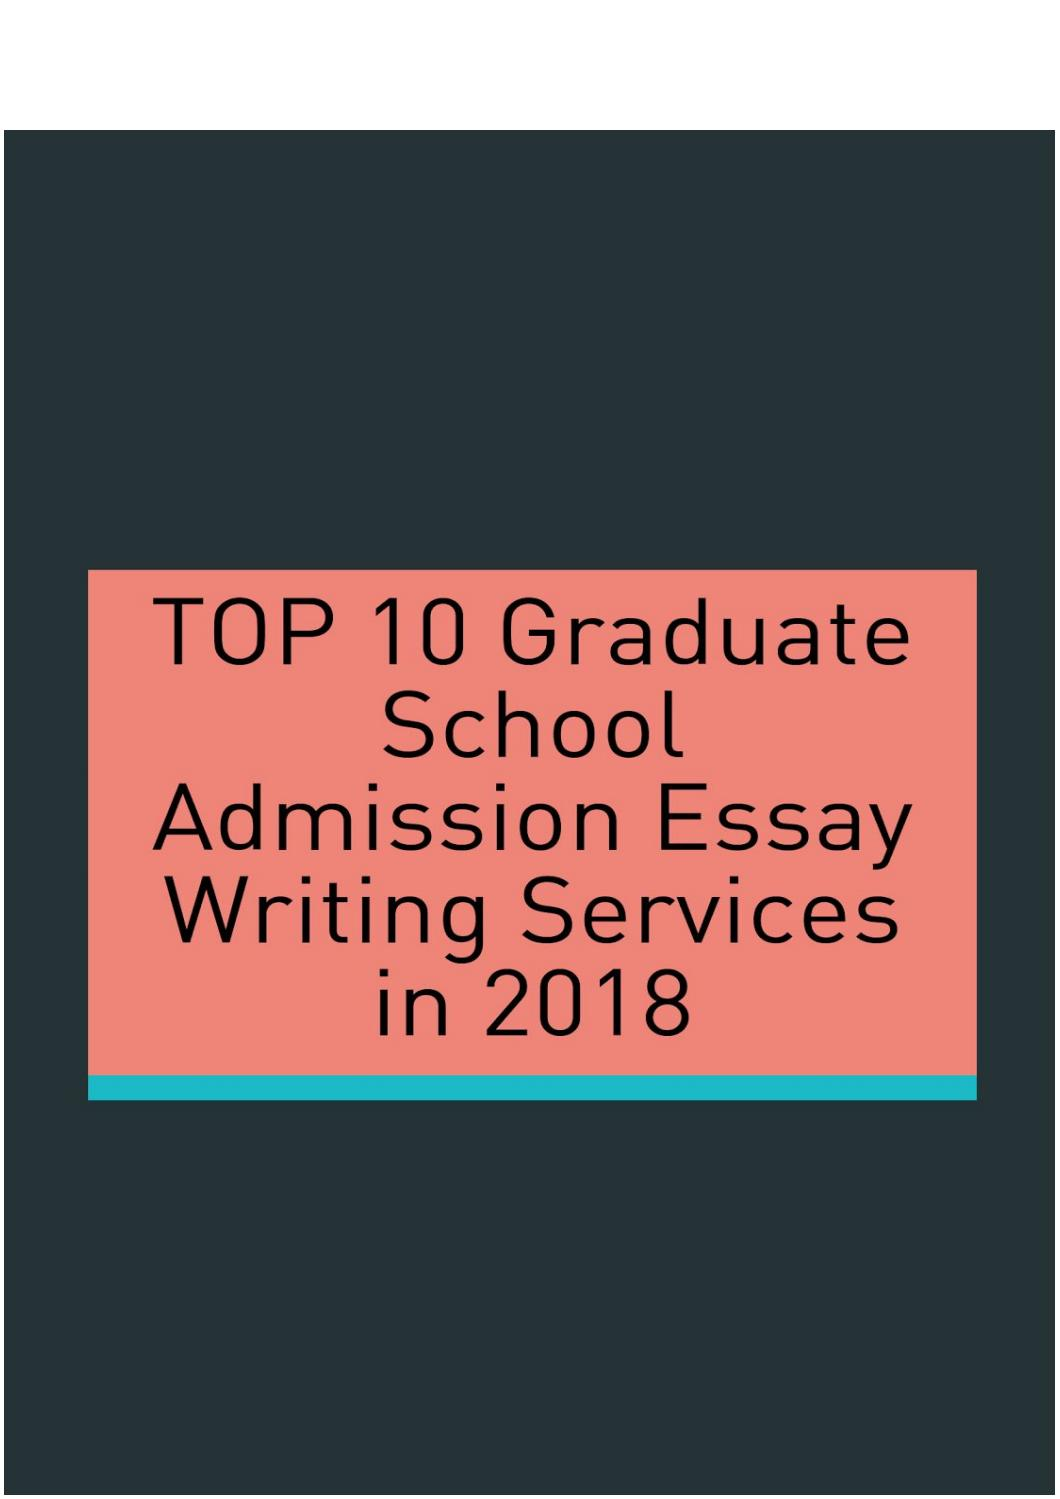 025 Custom Research Paper Writing Services Page 1 Dreaded Best Academic Service Thesis Full